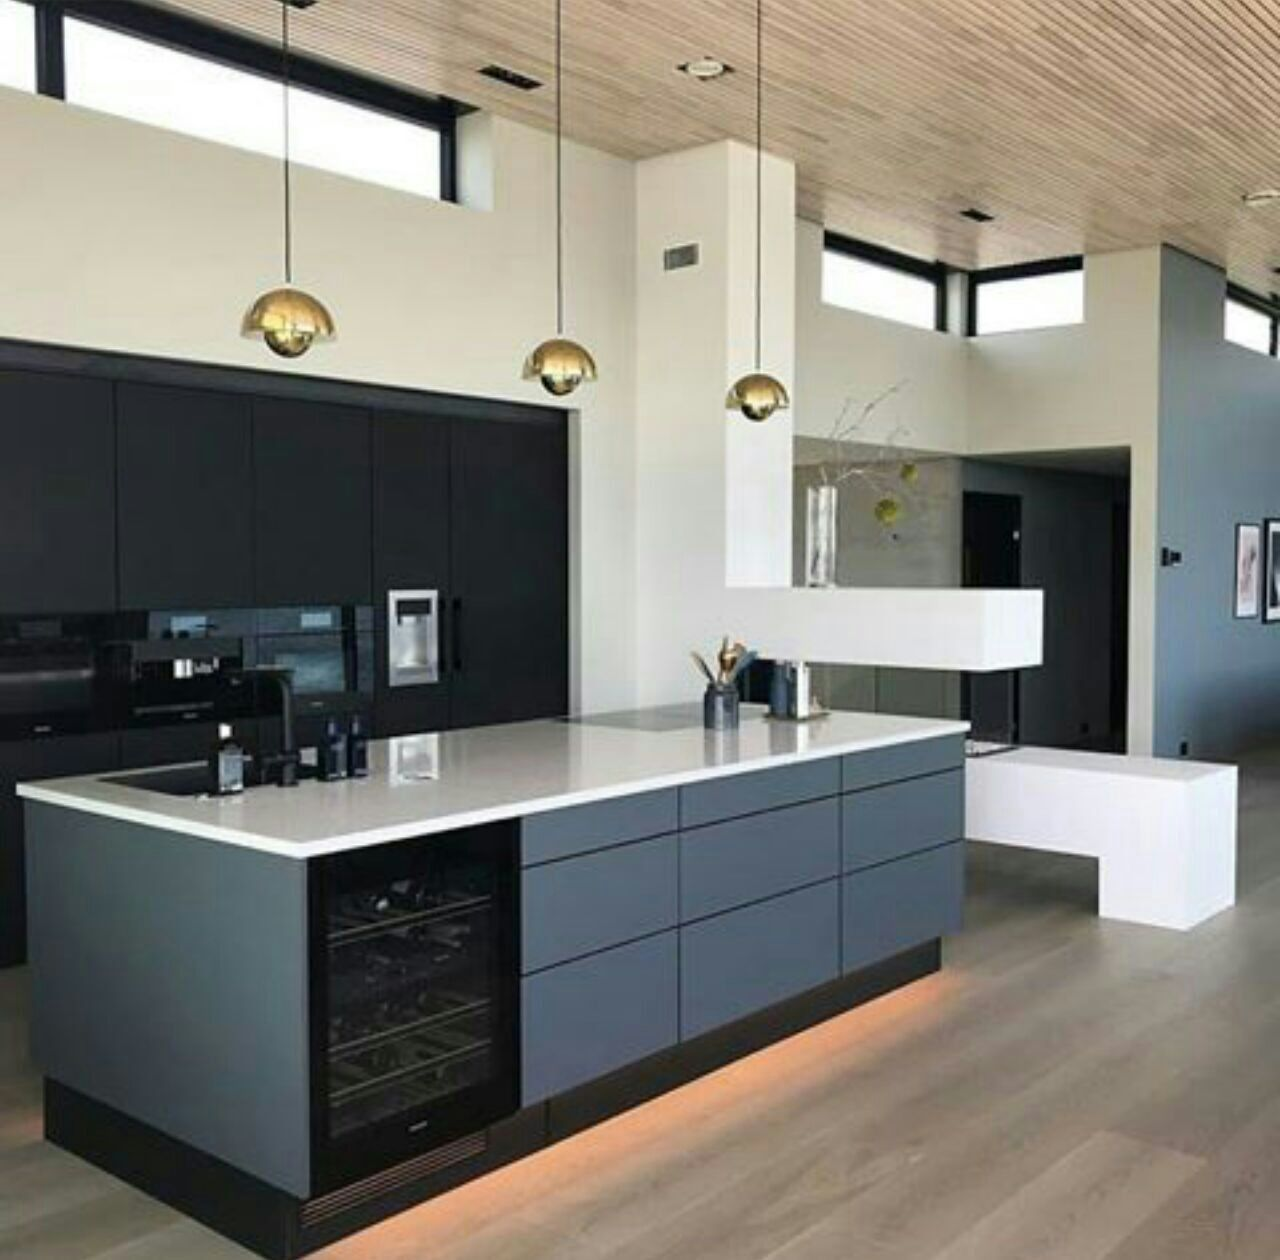 مطبخ أنيق In 2020 Kitchen Home Interior123